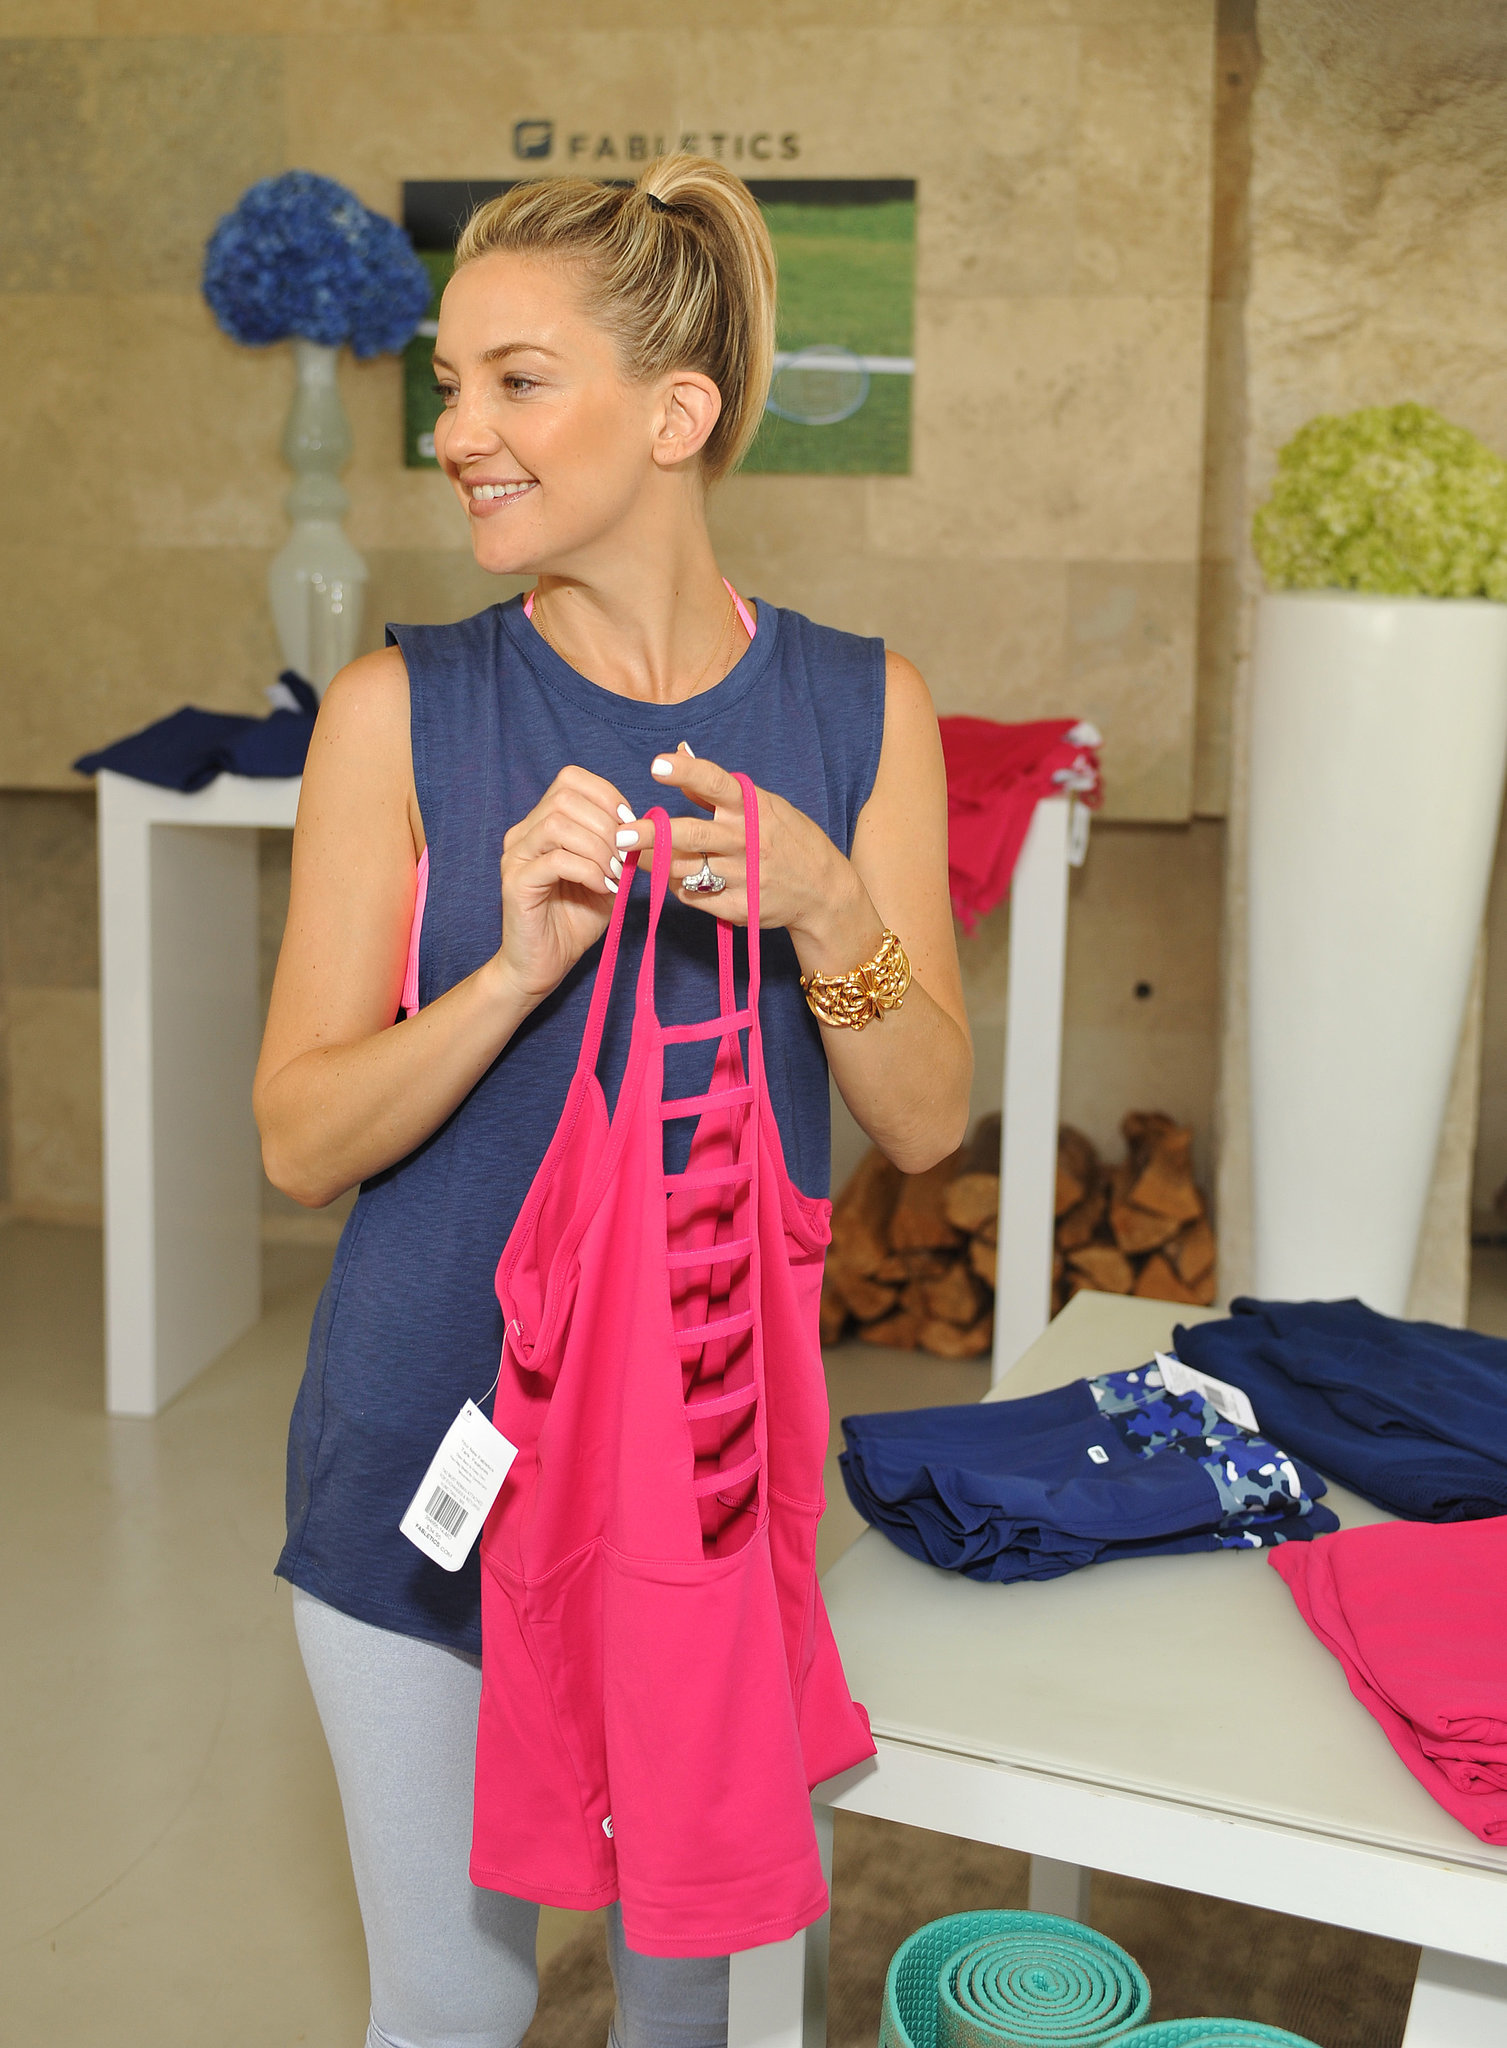 Kate Hudson's Pilates Physique Is Front and Center